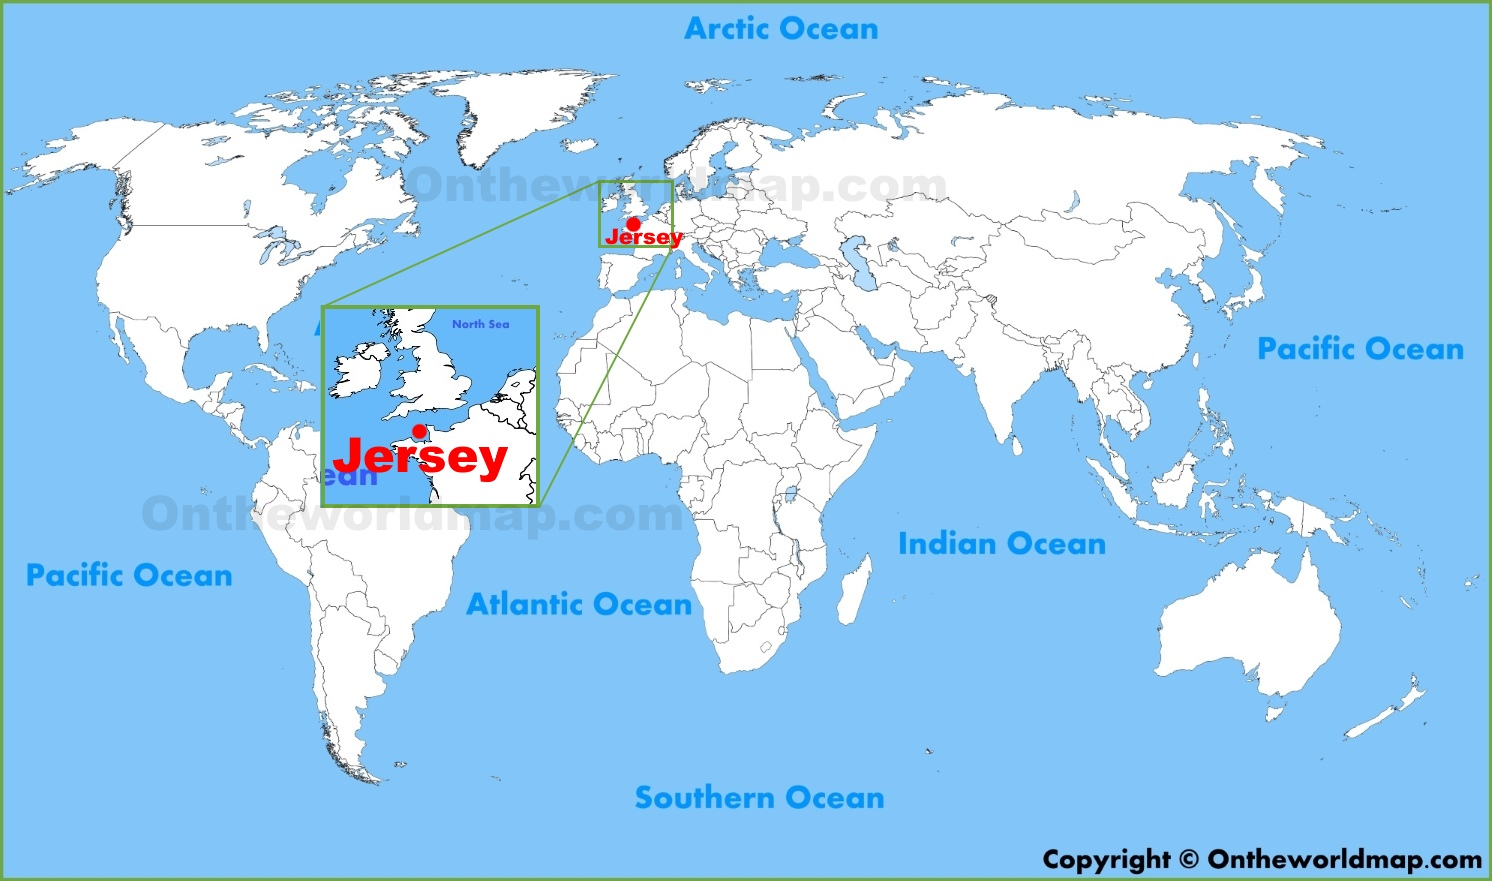 Jersey location on the World Map